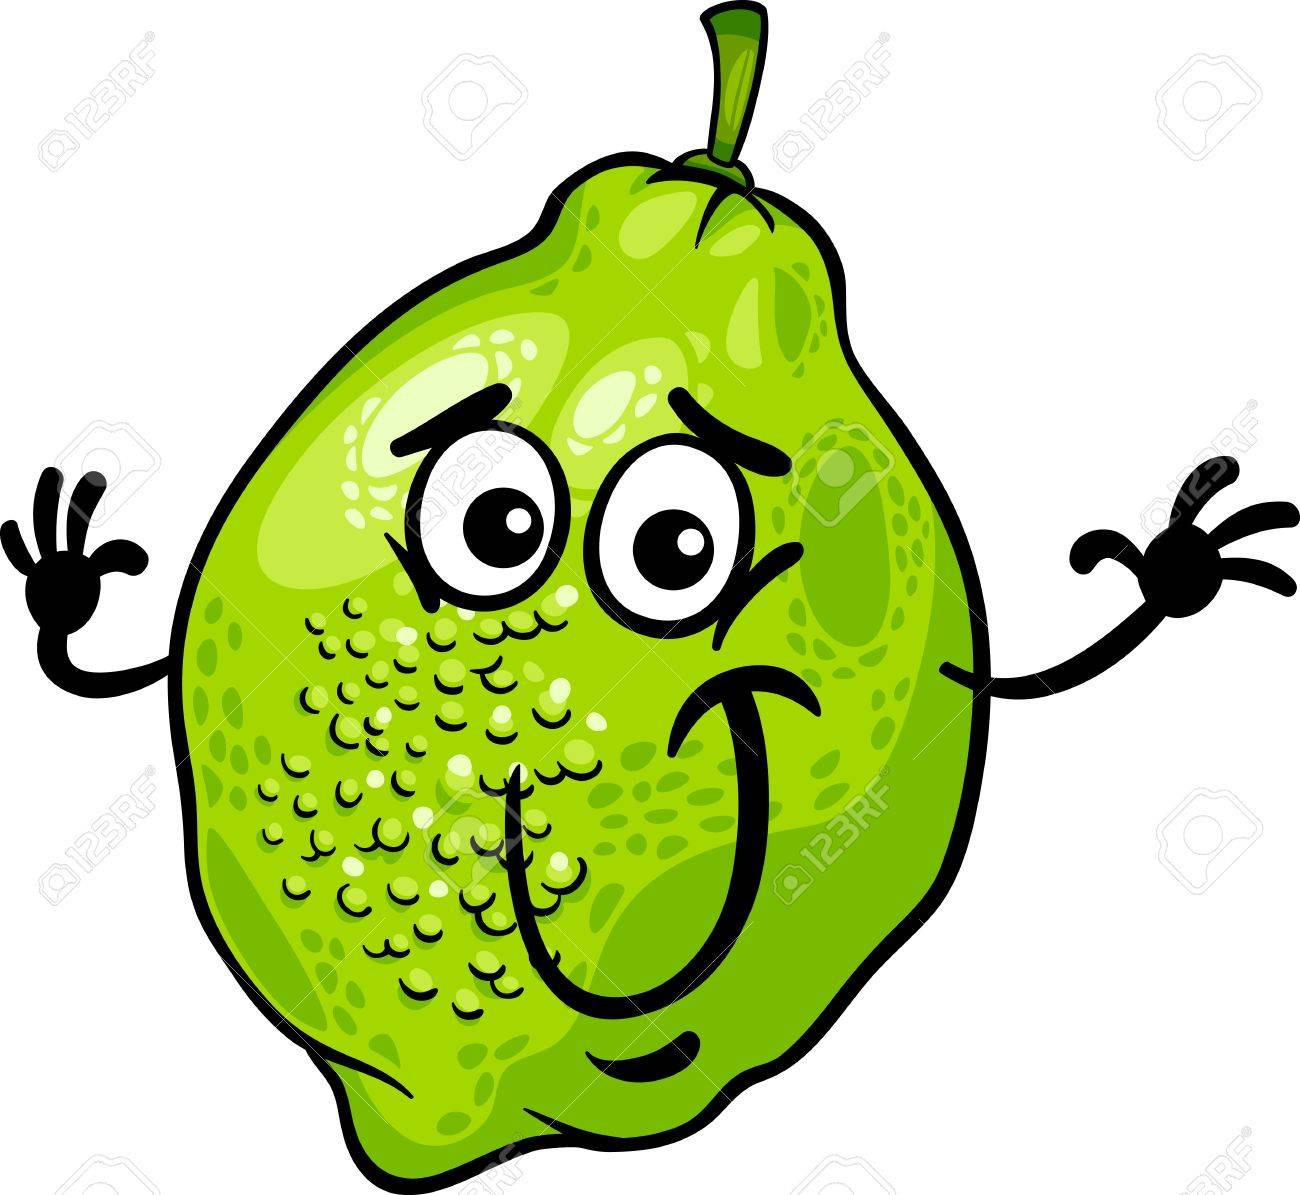 Cartoon Illustration Of Funny Lime Citrus Fruit Food Comic ...